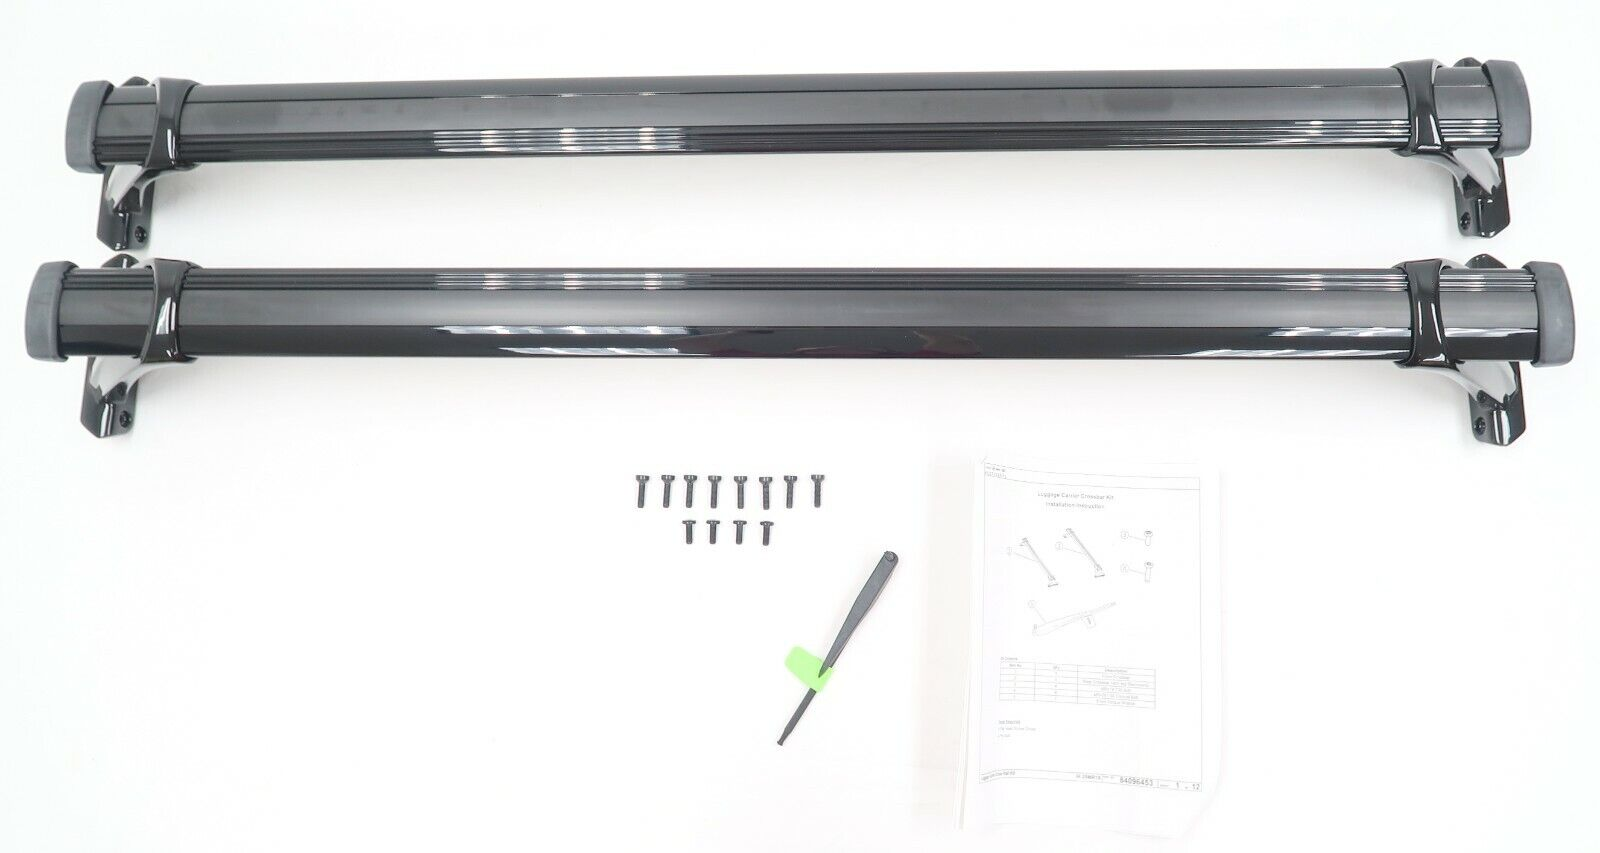 GM OEM Chevrolet Blazer W/OUT SUNROOF Removable Gloss Black Roof Cross Rails NEW